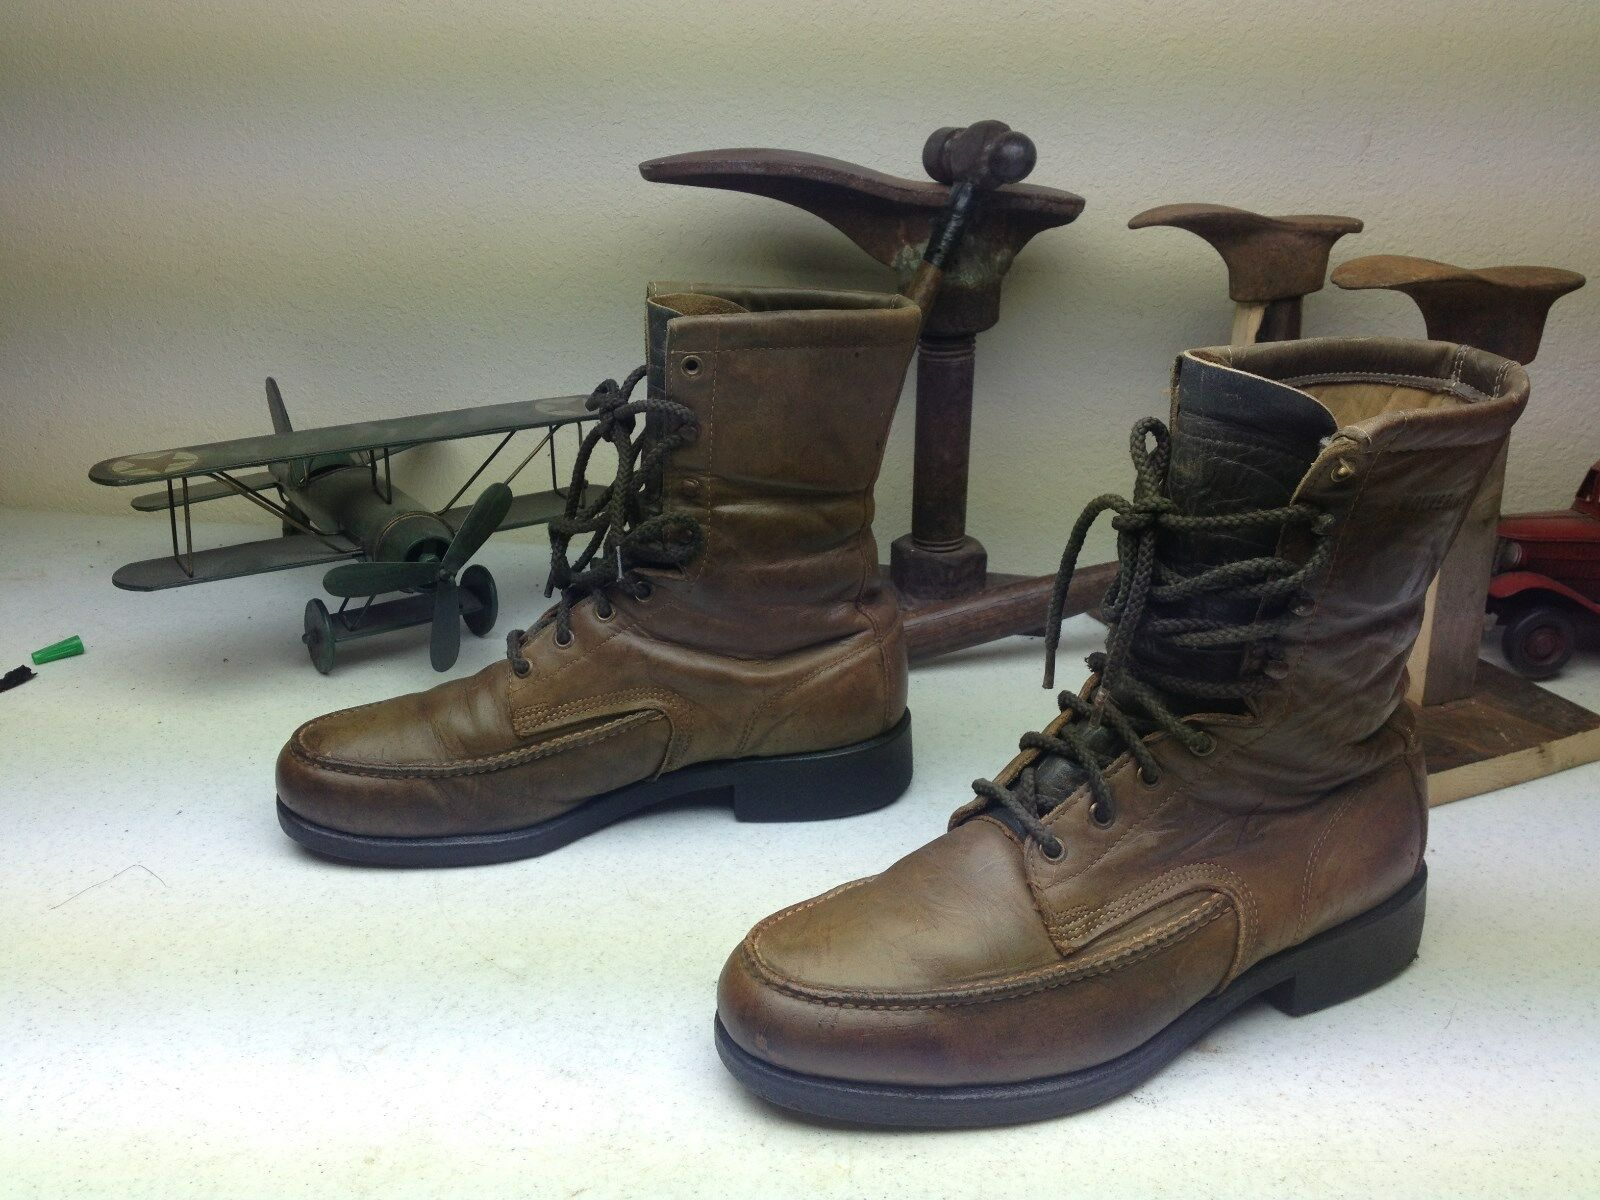 BROWN MADE IN USA WOLVERINE LACE UP PACKER Stiefel FARM WORK CHORE TRUCK Stiefel PACKER 10.5 D bacaf8